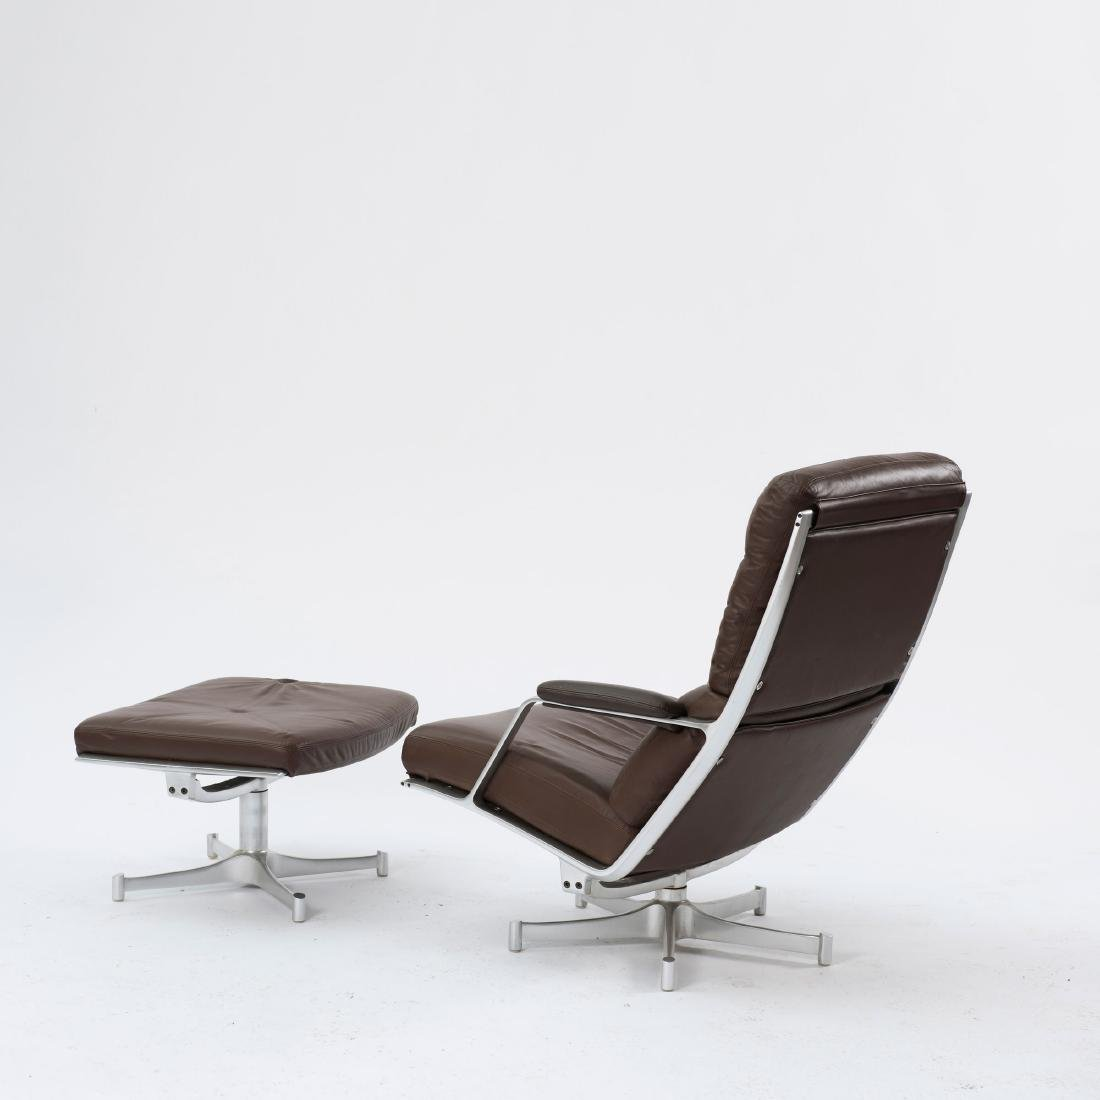 Two 'FK 85' easy chairs and one ottoman, c. 1968 - 3